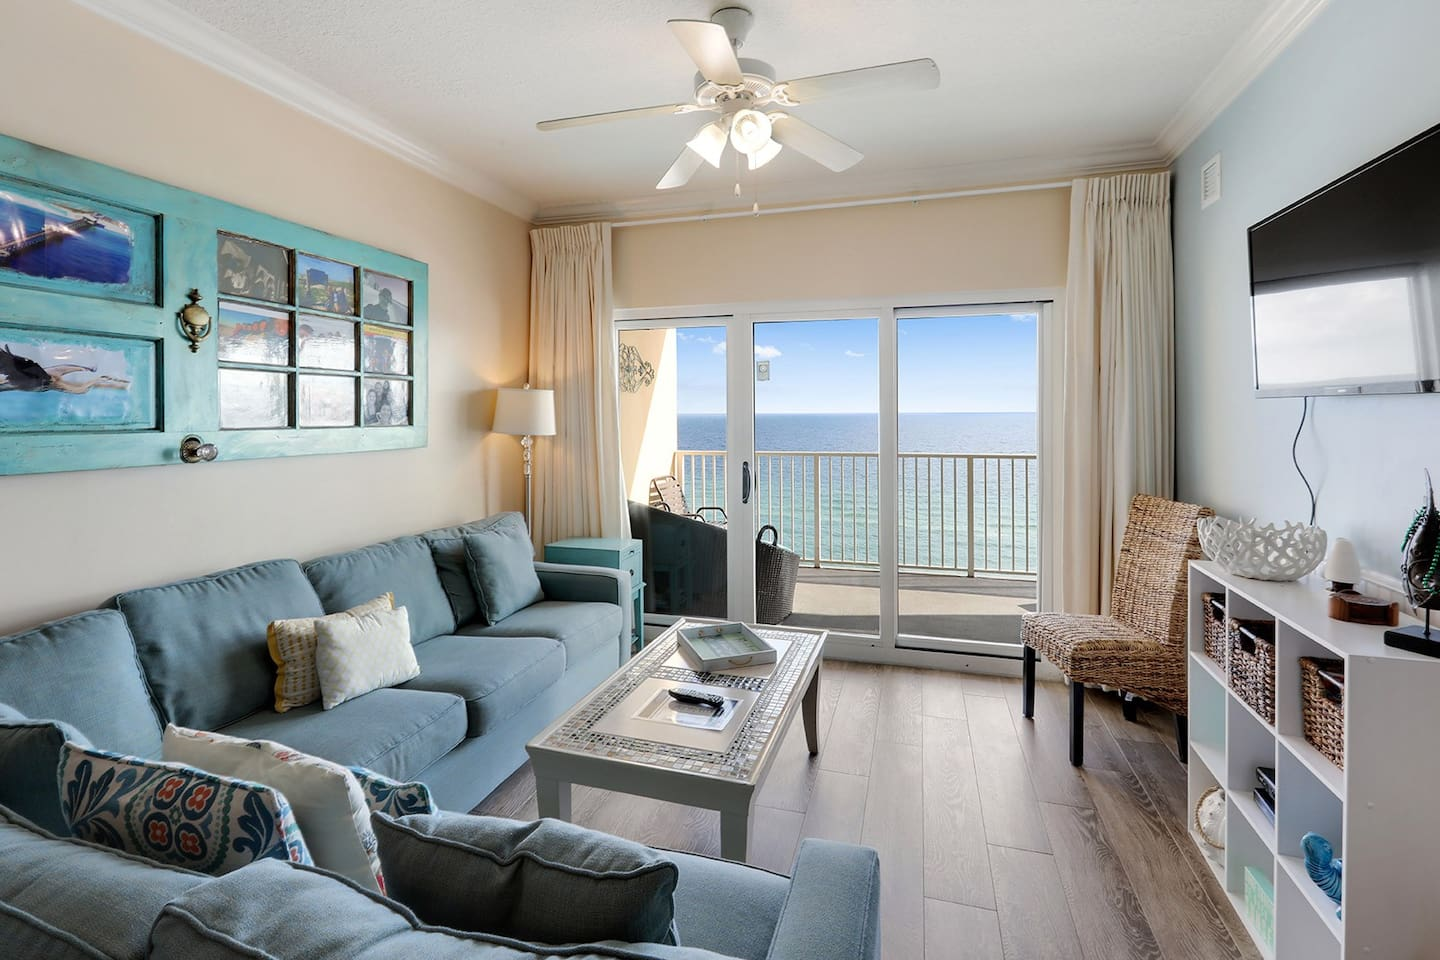 Unit 1208 is elegantly appointed with amazing views